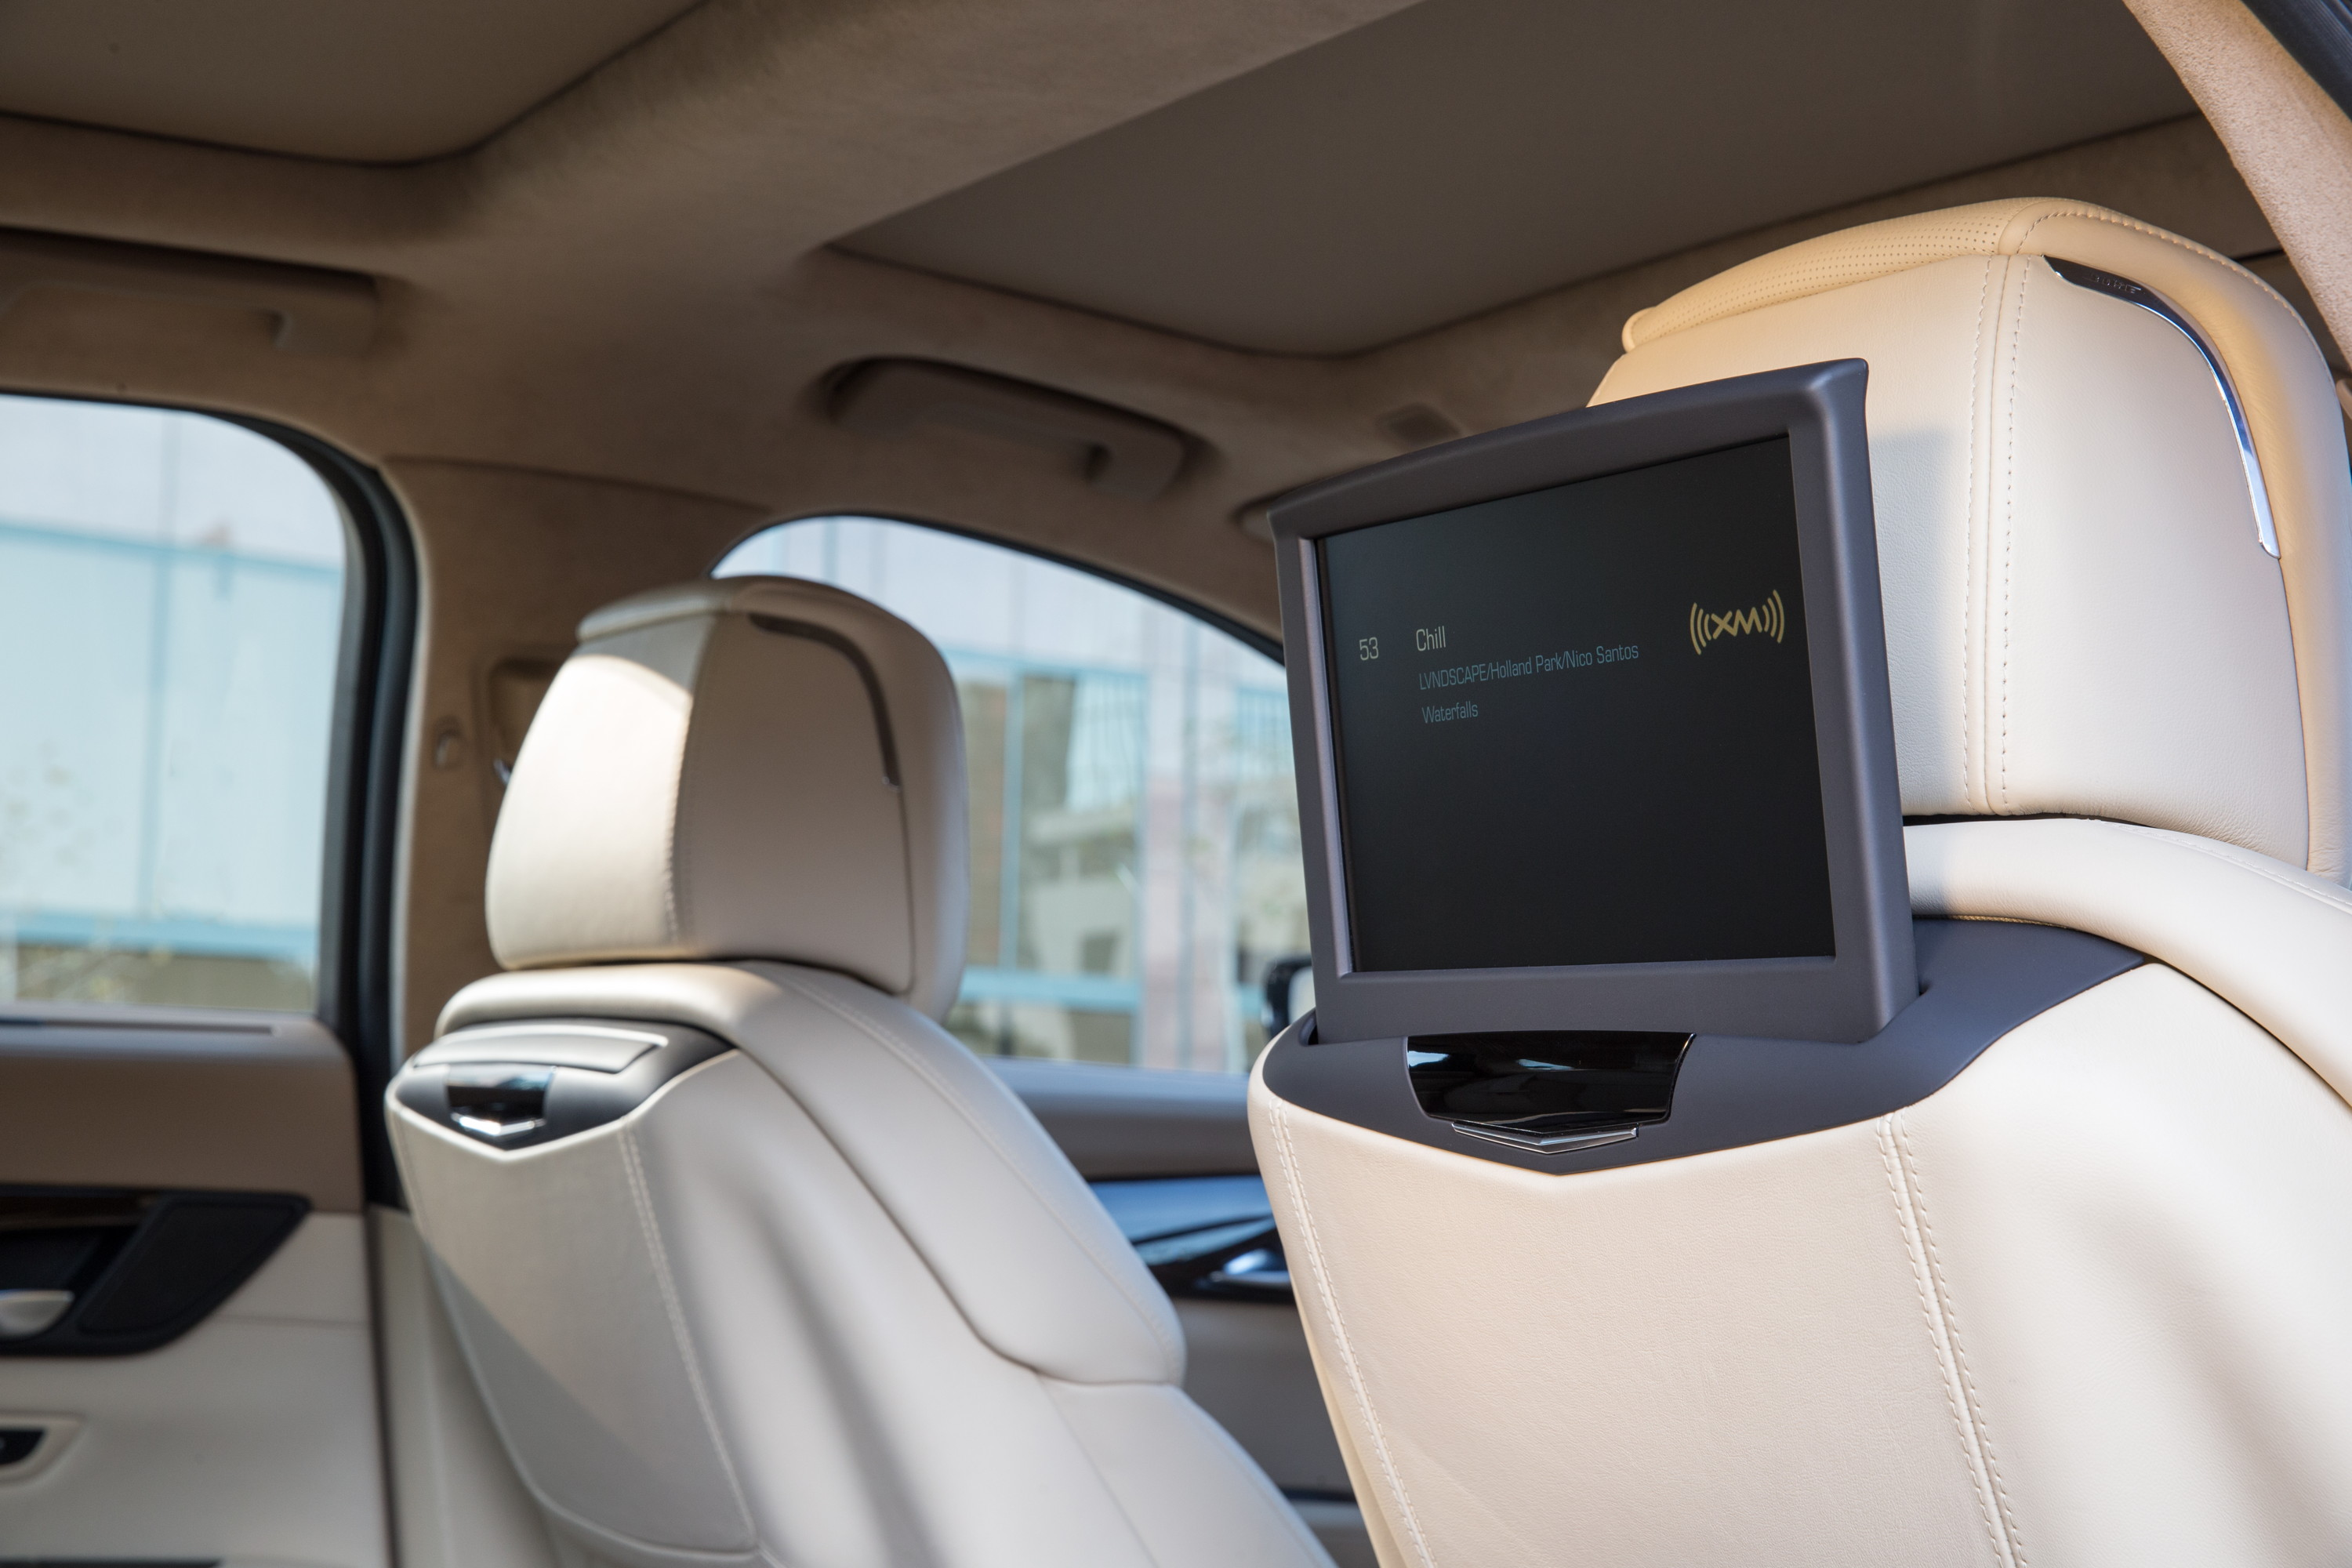 Cadillac CT6 rear seat infotainment system offers new levels of ...